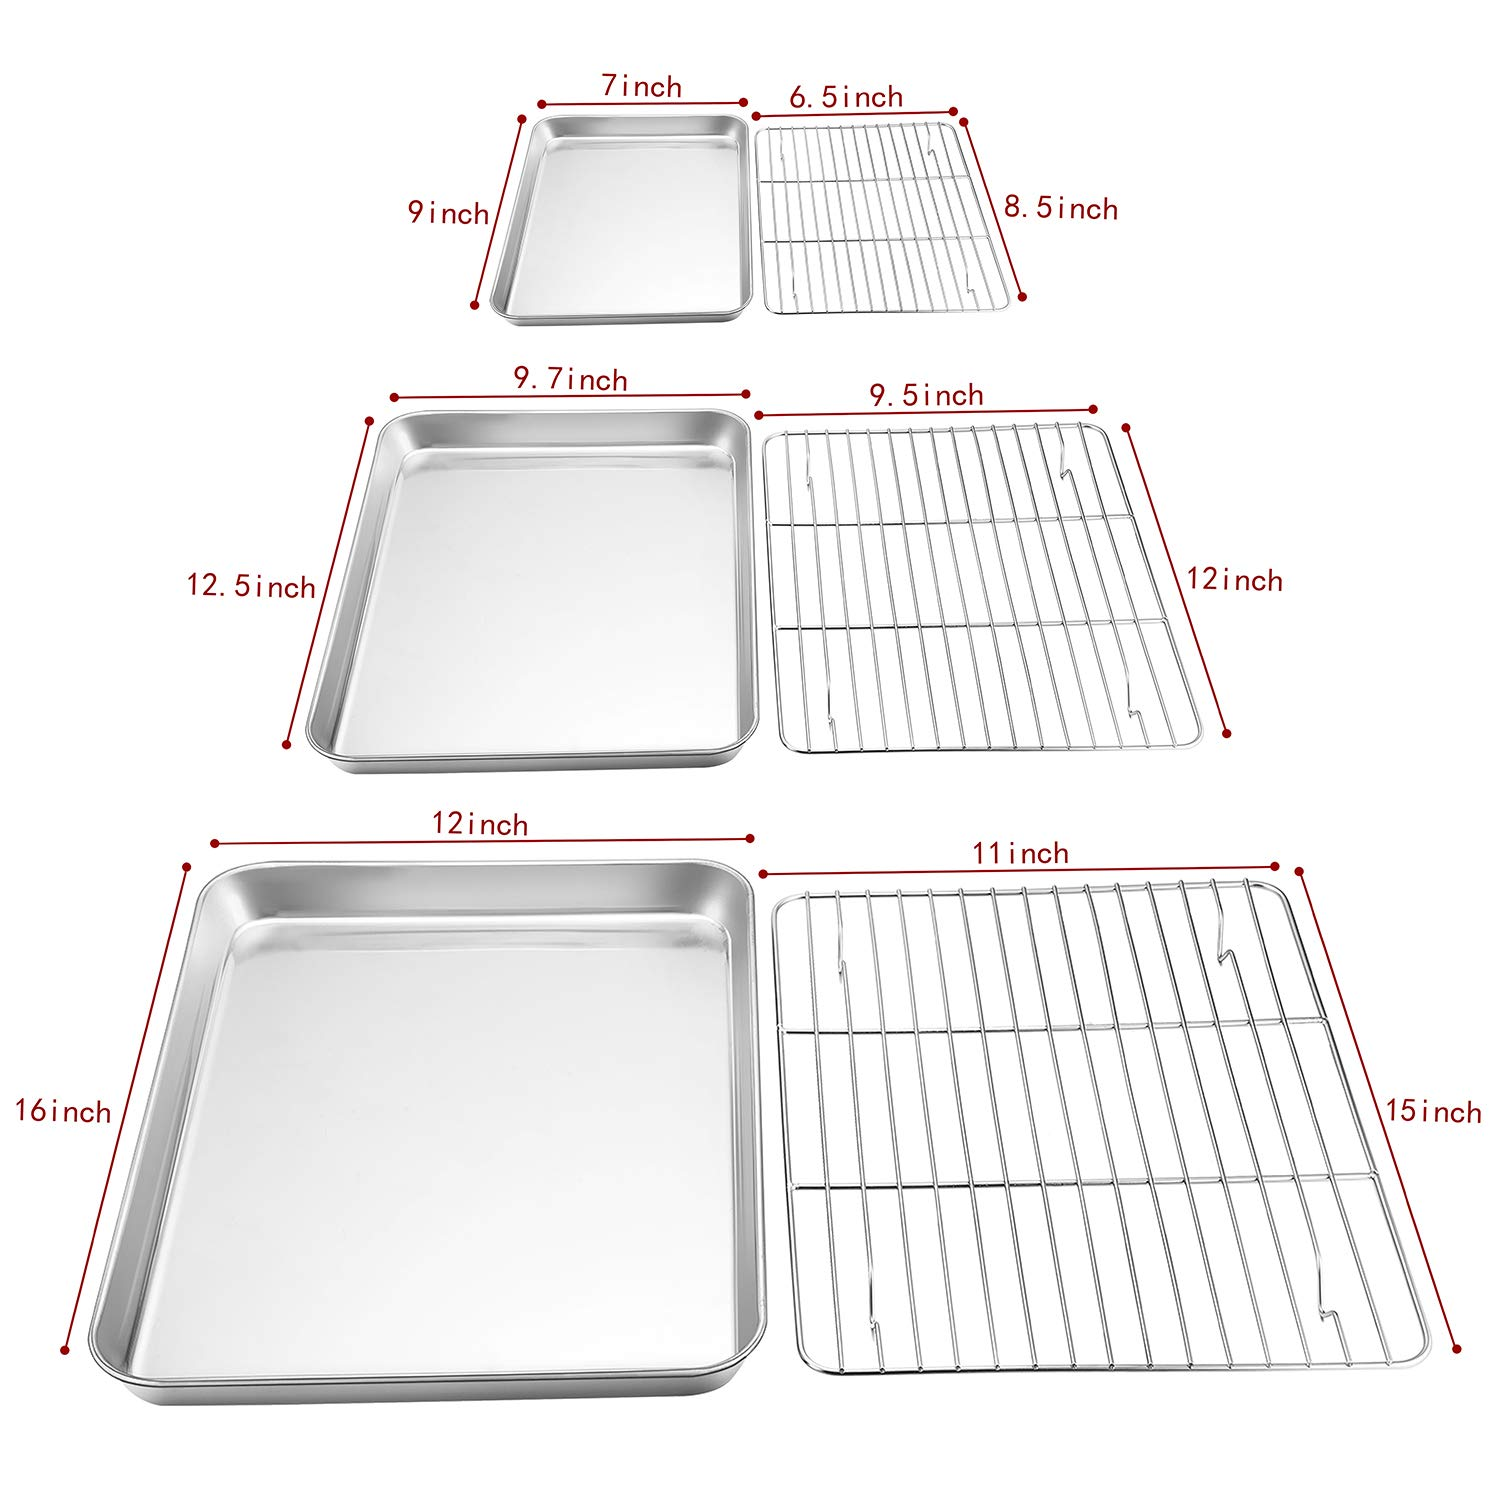 P&P CHEF Baking Sheet and Rack Set, 6 PACK (3 Sheets + 3 Racks), Stainless Steel Baking Cookie Sheets Pans with Cooling Rack for Baking and Roasting, Oven & Dishwasher Safe by P&P CHEF (Image #7)